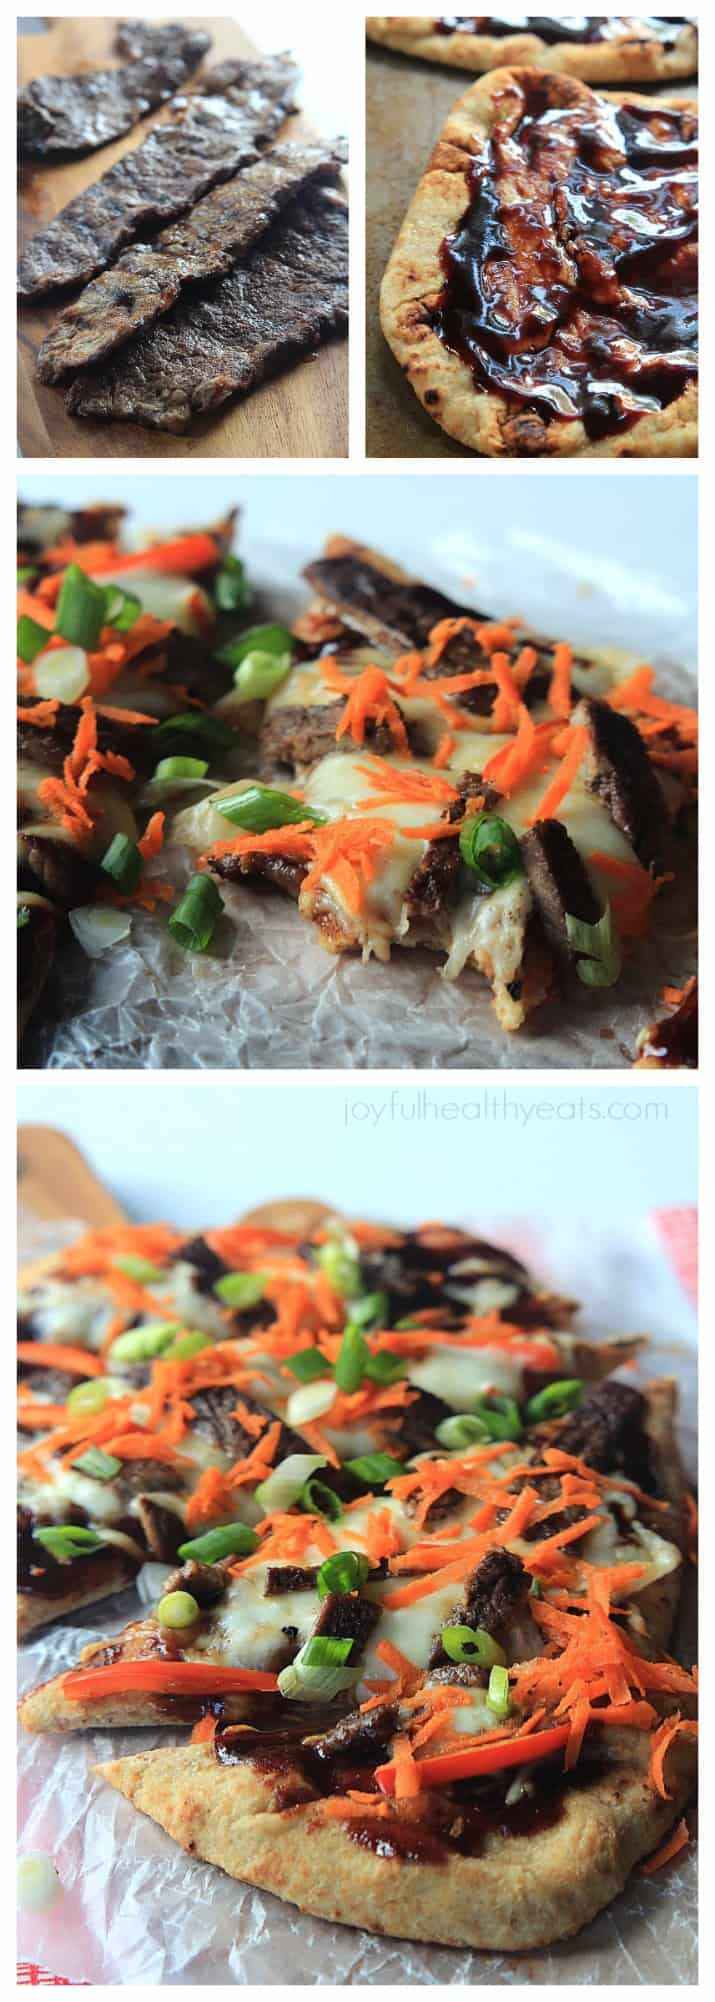 Grilled Asian Short Rib Pizza with Blackberry Hoisin Sauce, definitely one incredible pizza recipe! | www.joyfulhealthyeats.com